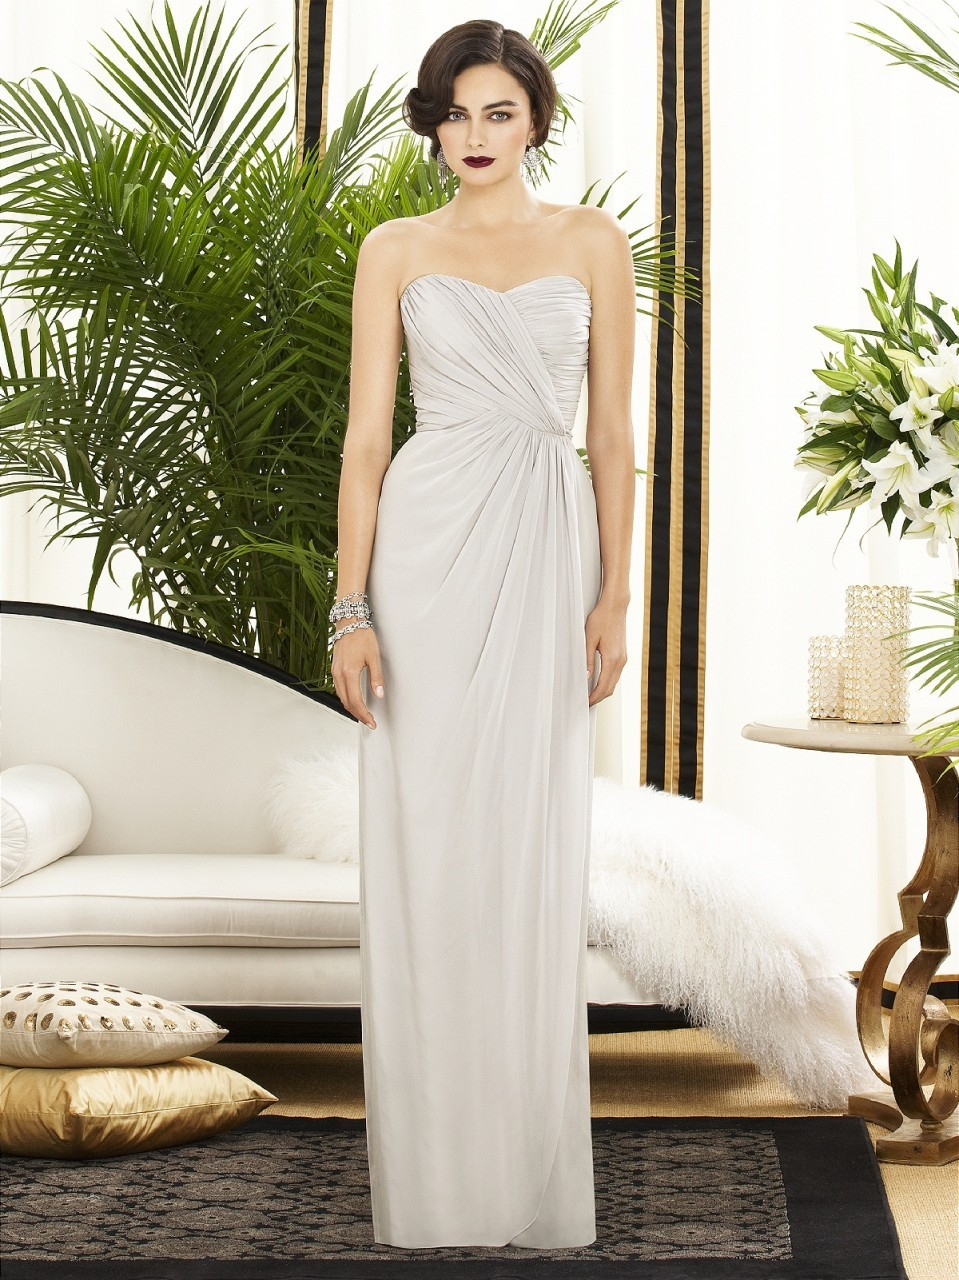 Dessy bridesmaid dressesdessy dresses 2882d2882the dessy group dessy bridesmaid dresses dessy 2882 loading zoom ombrellifo Choice Image